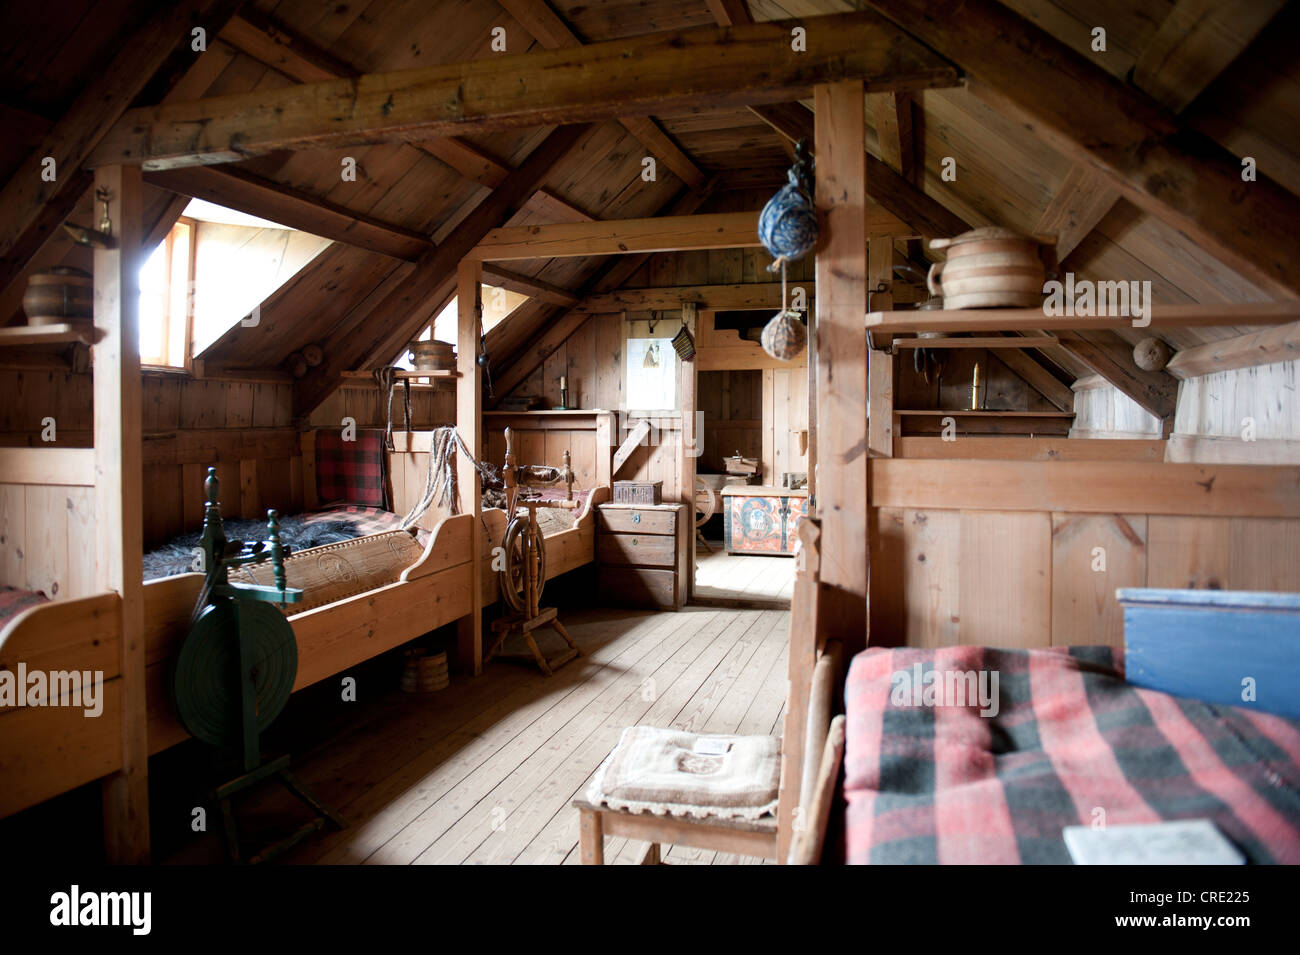 Living In The Middle Ages Interior View Wooden Furniture Old Sod House Turf And Constructions Open Air Museum